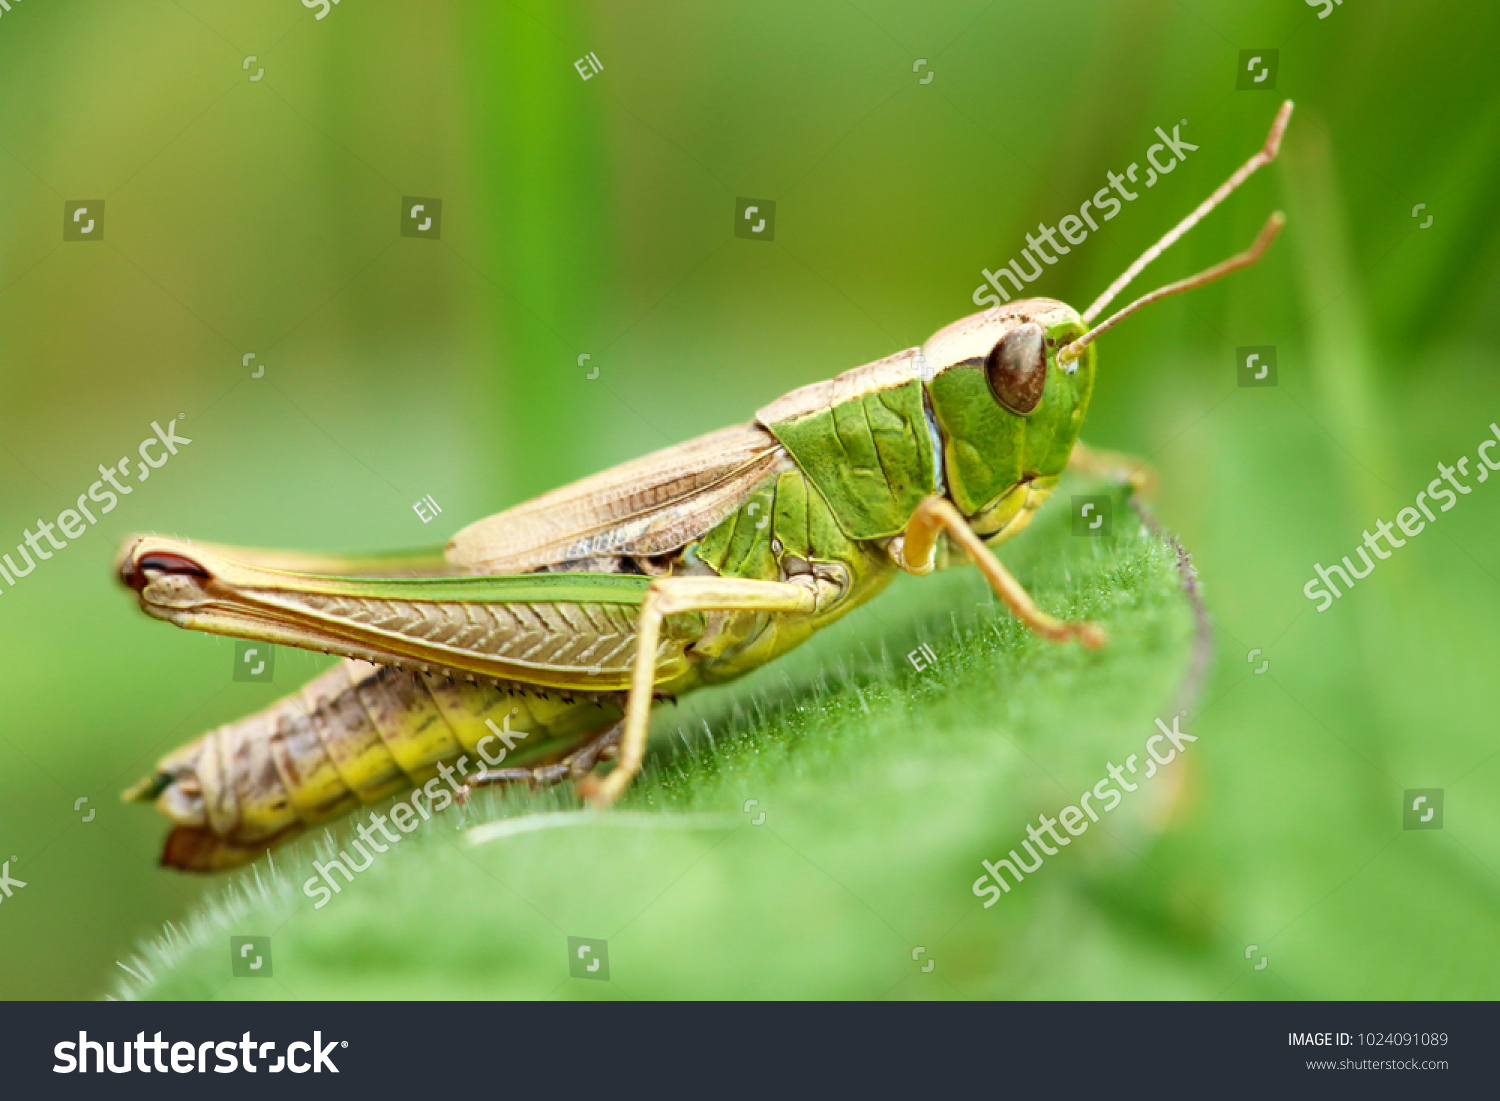 Meadow grasshopper, grasshopper #1024091089